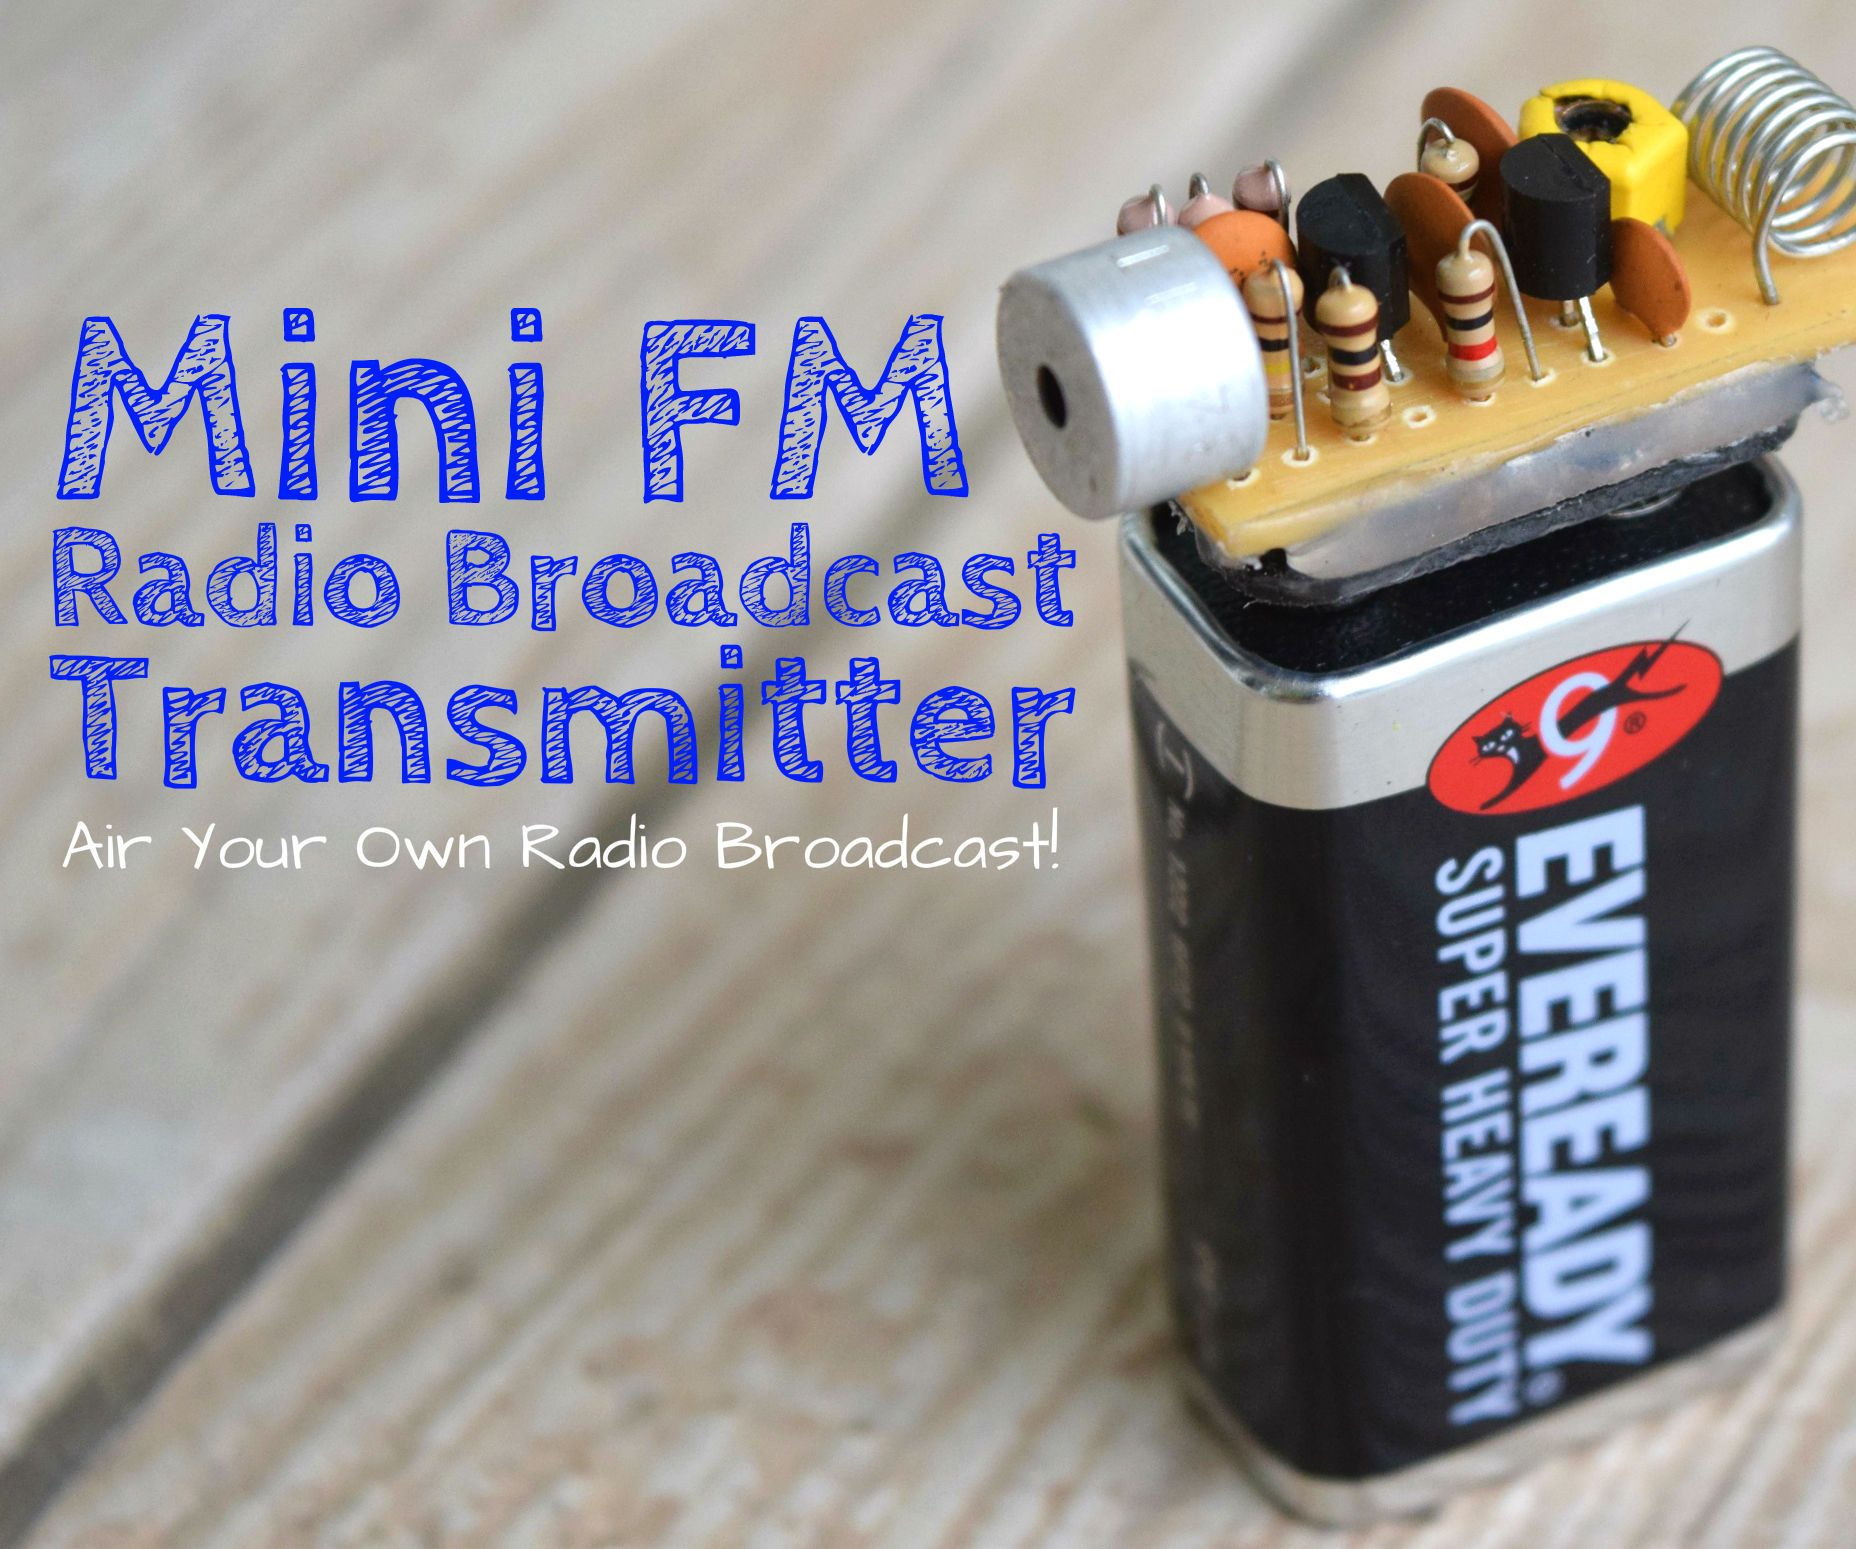 The Ultimate Fm Transmitter Long Range Spybug Relojes Simple Radio Jammer Circuit Diagram Have You Ever Wanted To Broadcast Your Own Station Within Neighborhood Get Curious On Where People Those Surveillance Bugs From Spy